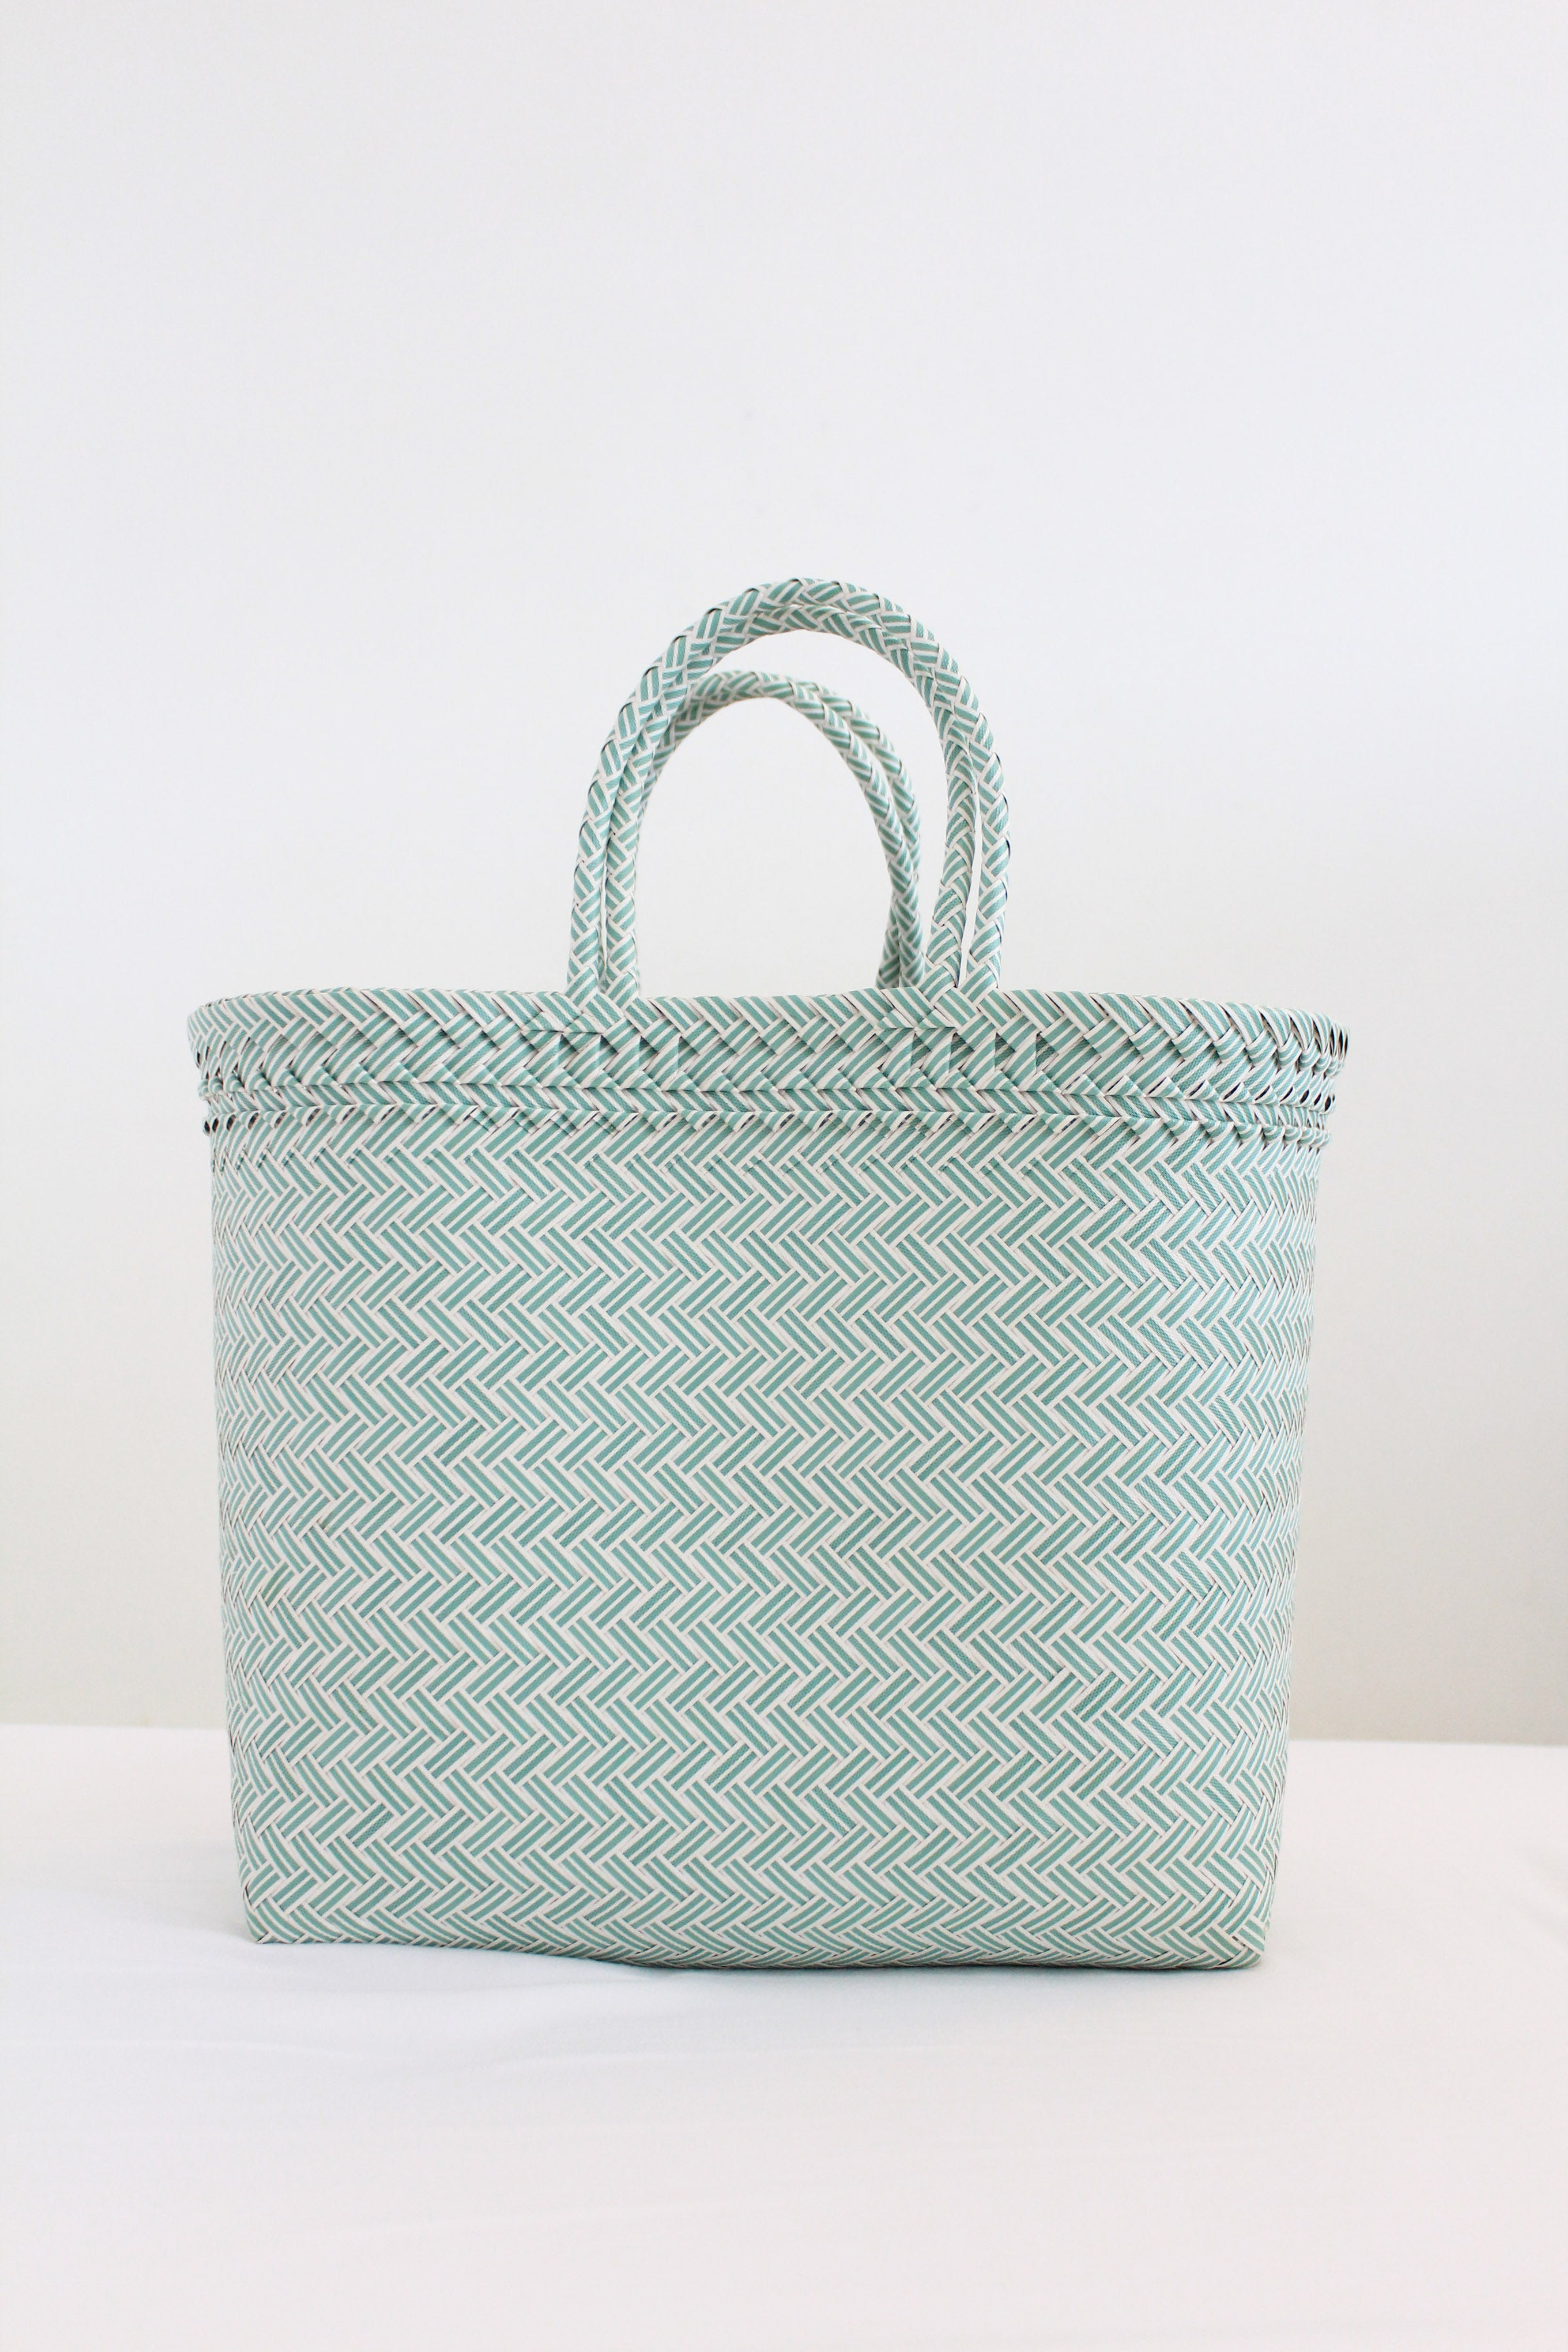 Saffron Bag in Light Teal